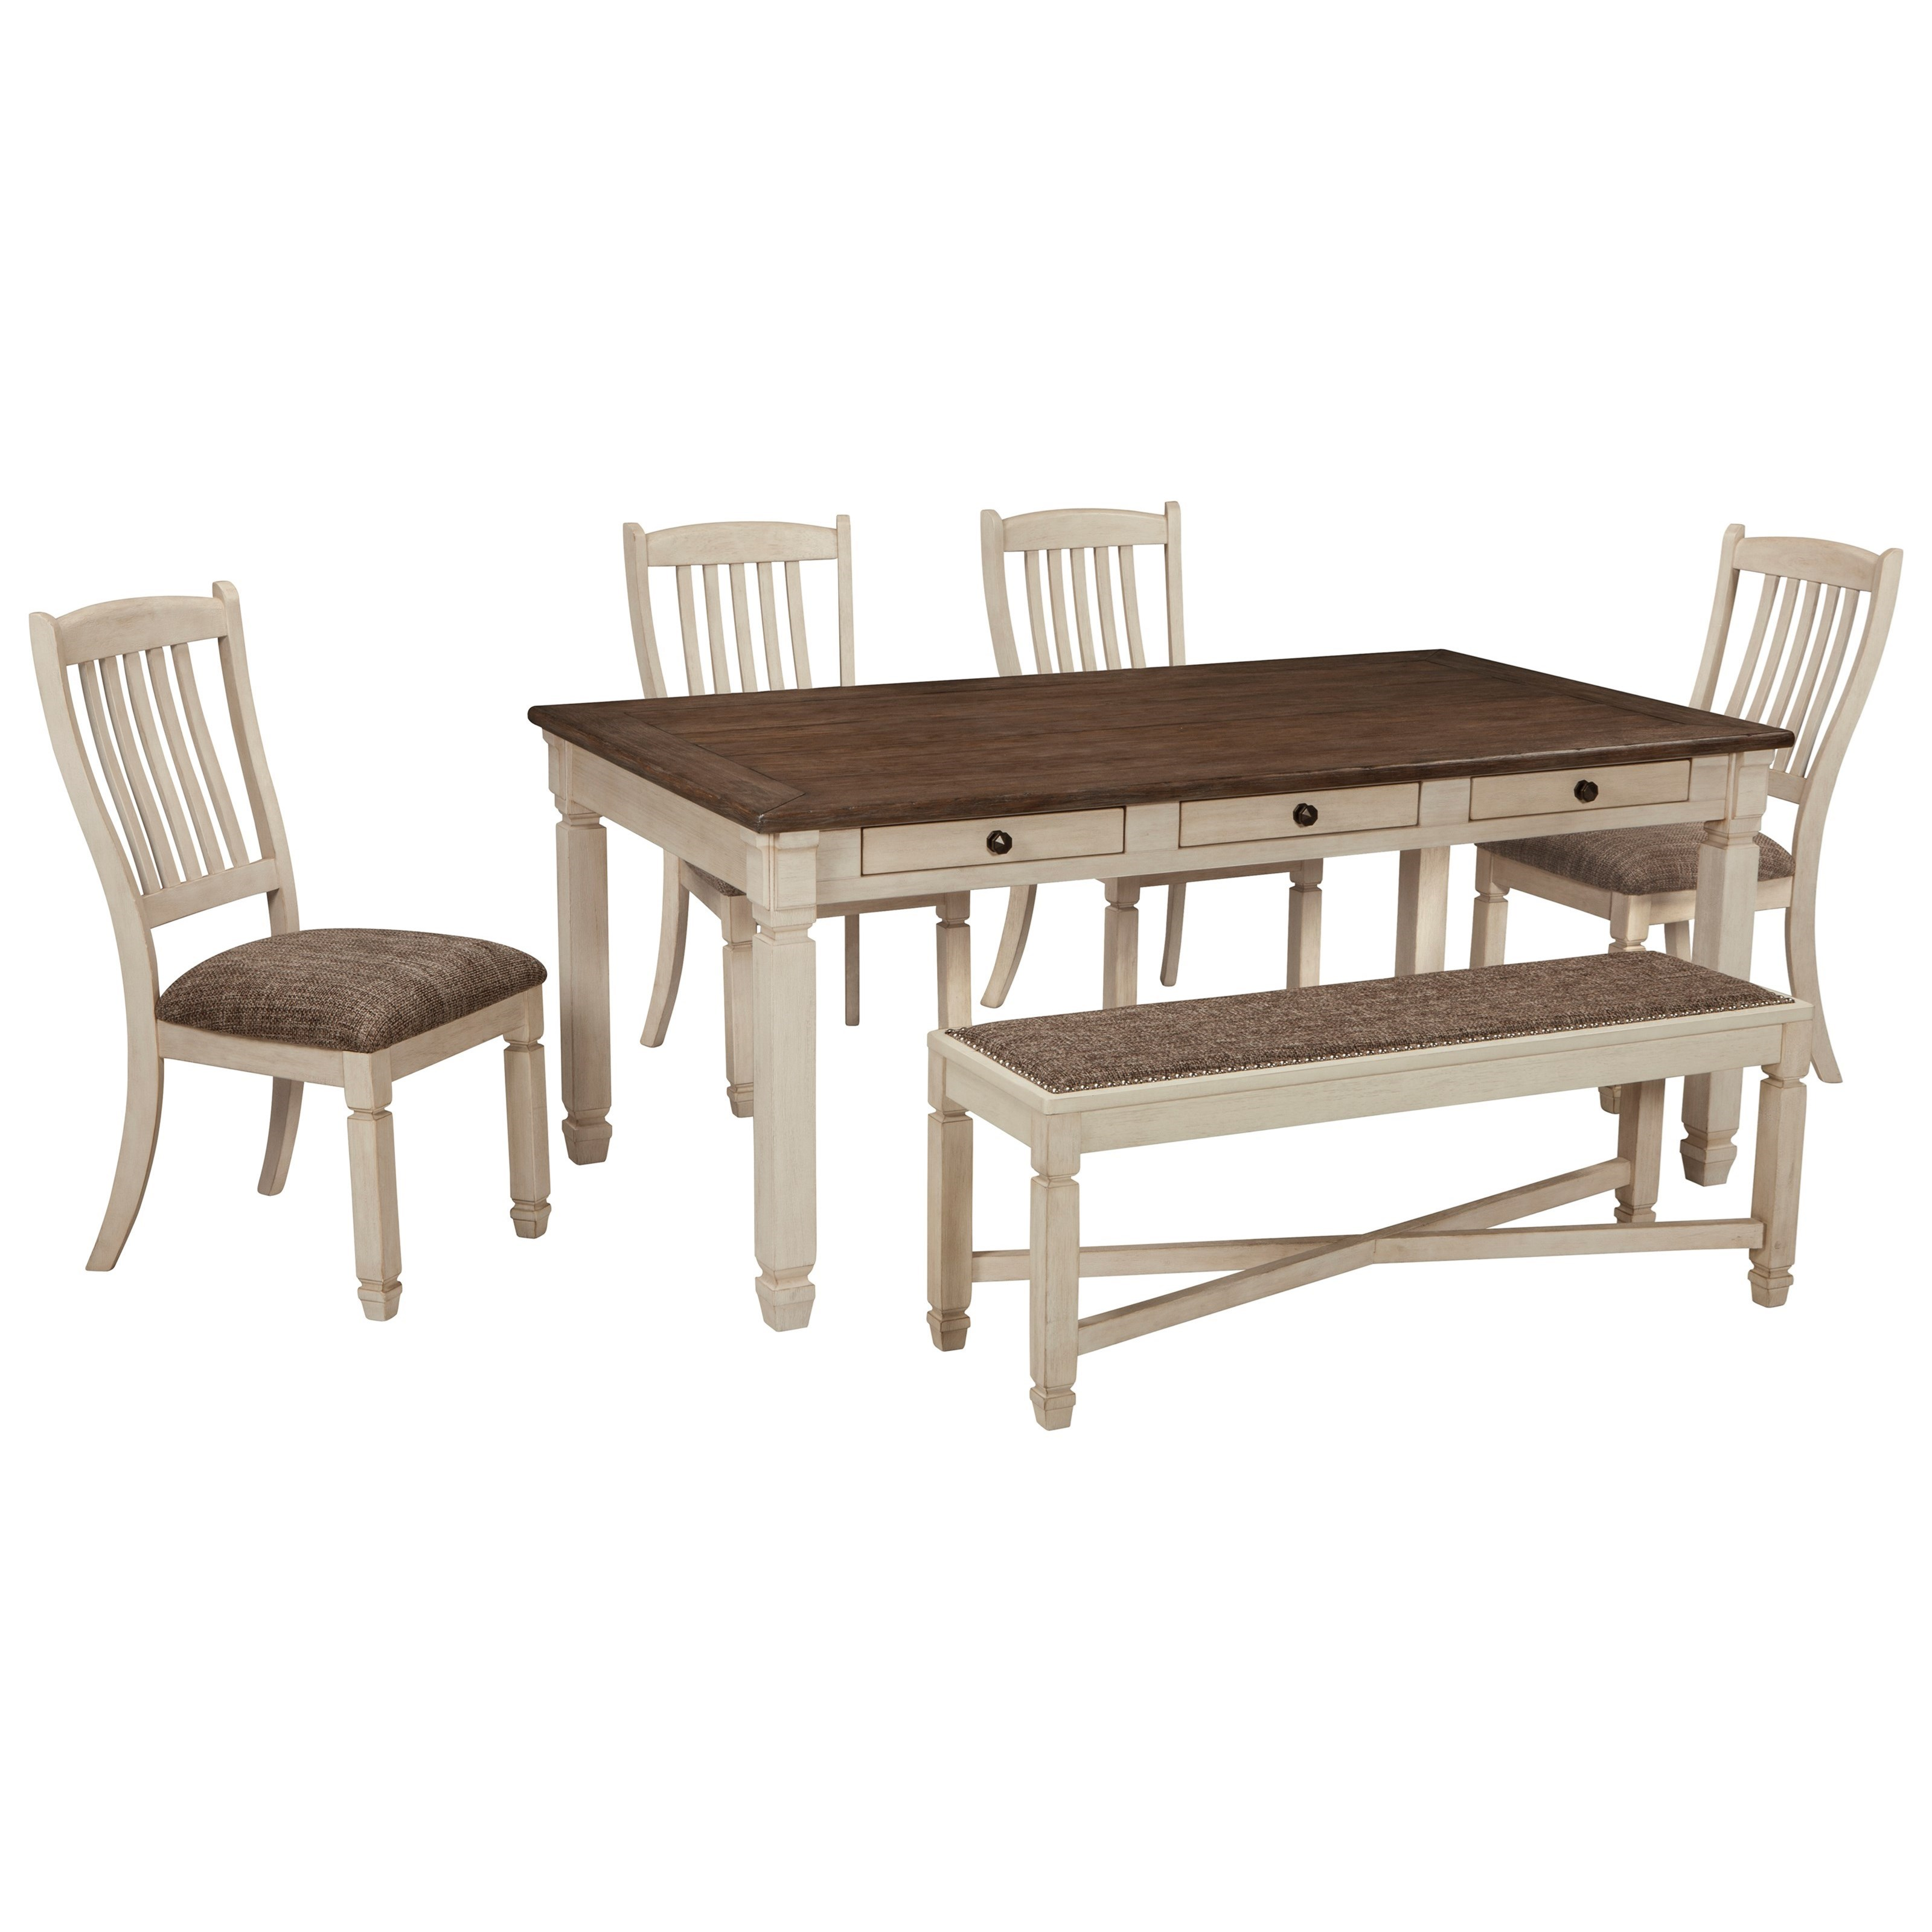 Bolanburg Table and Chair Set with Bench by Signature Design by Ashley at Beck's Furniture